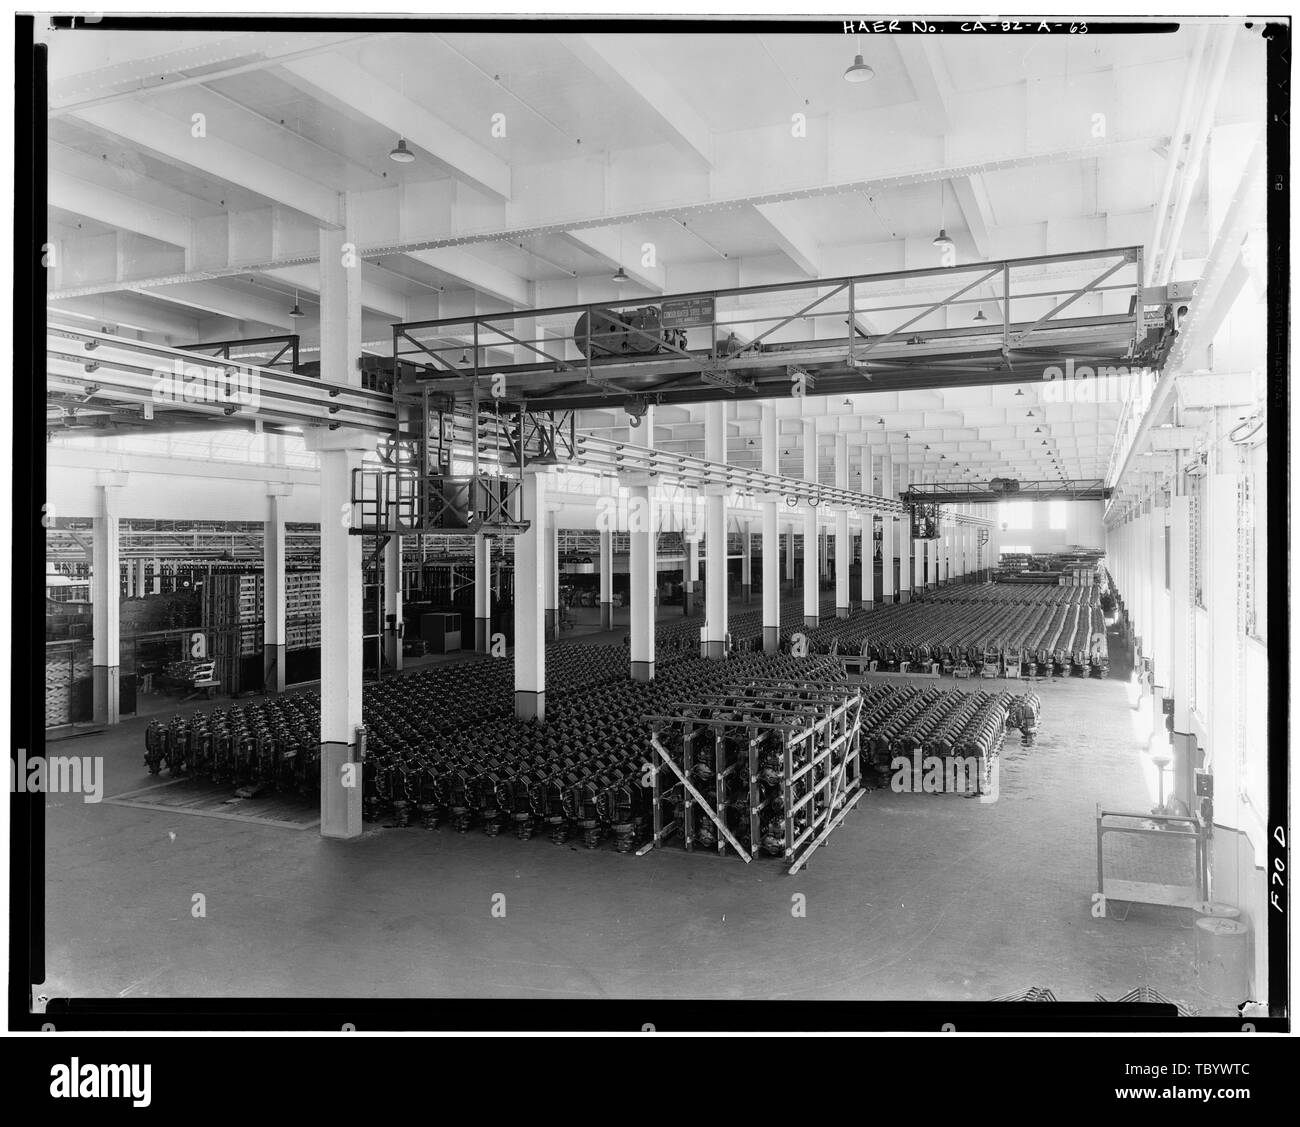 Neg. Nr. F70D, Apr 13, 1930, INTERIORWAREHOUSE, 1. Stock MOTOR LAGERUNG Ford Motor Company Long Beach Montagewerk, Assembly Building, 700 Henry Ford Avenue, Long Beach, Los Angeles County, CA Stockbild